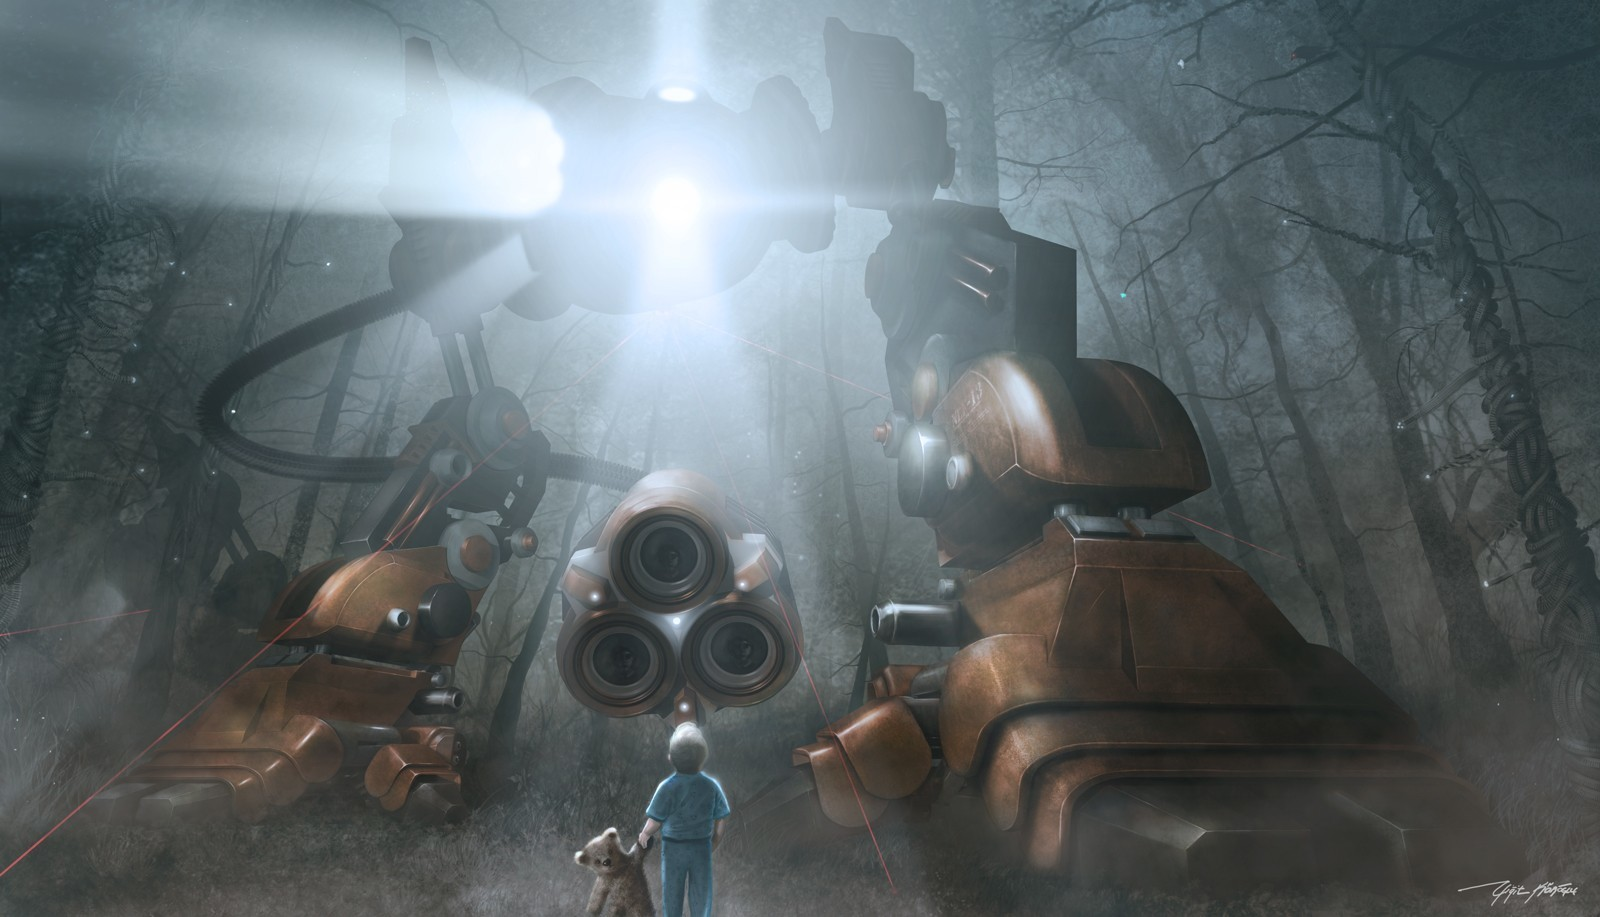 light robot Robots futuristic HD Wallpaper